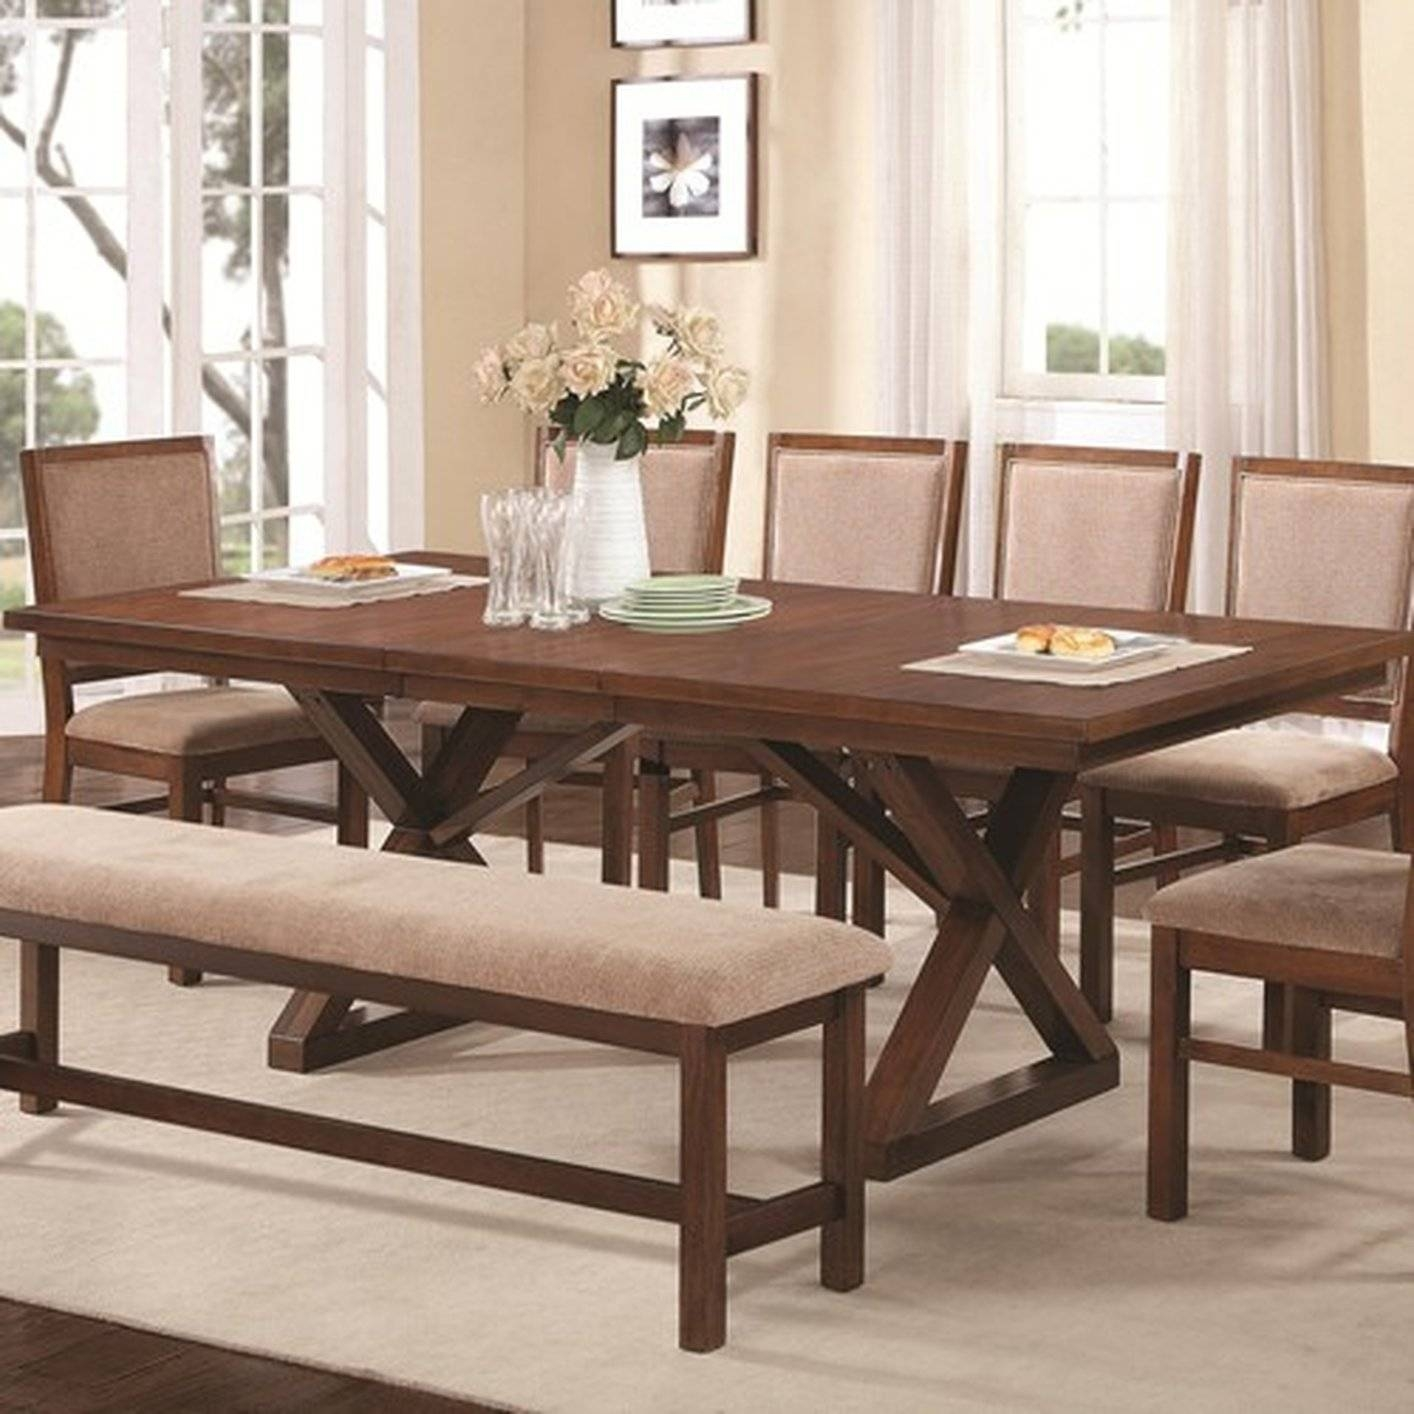 Brown Wood Dining Table - Steal-A-Sofa Furniture Outlet Los Angeles Ca throughout Dining Table With Sofa Chairs (Image 6 of 15)